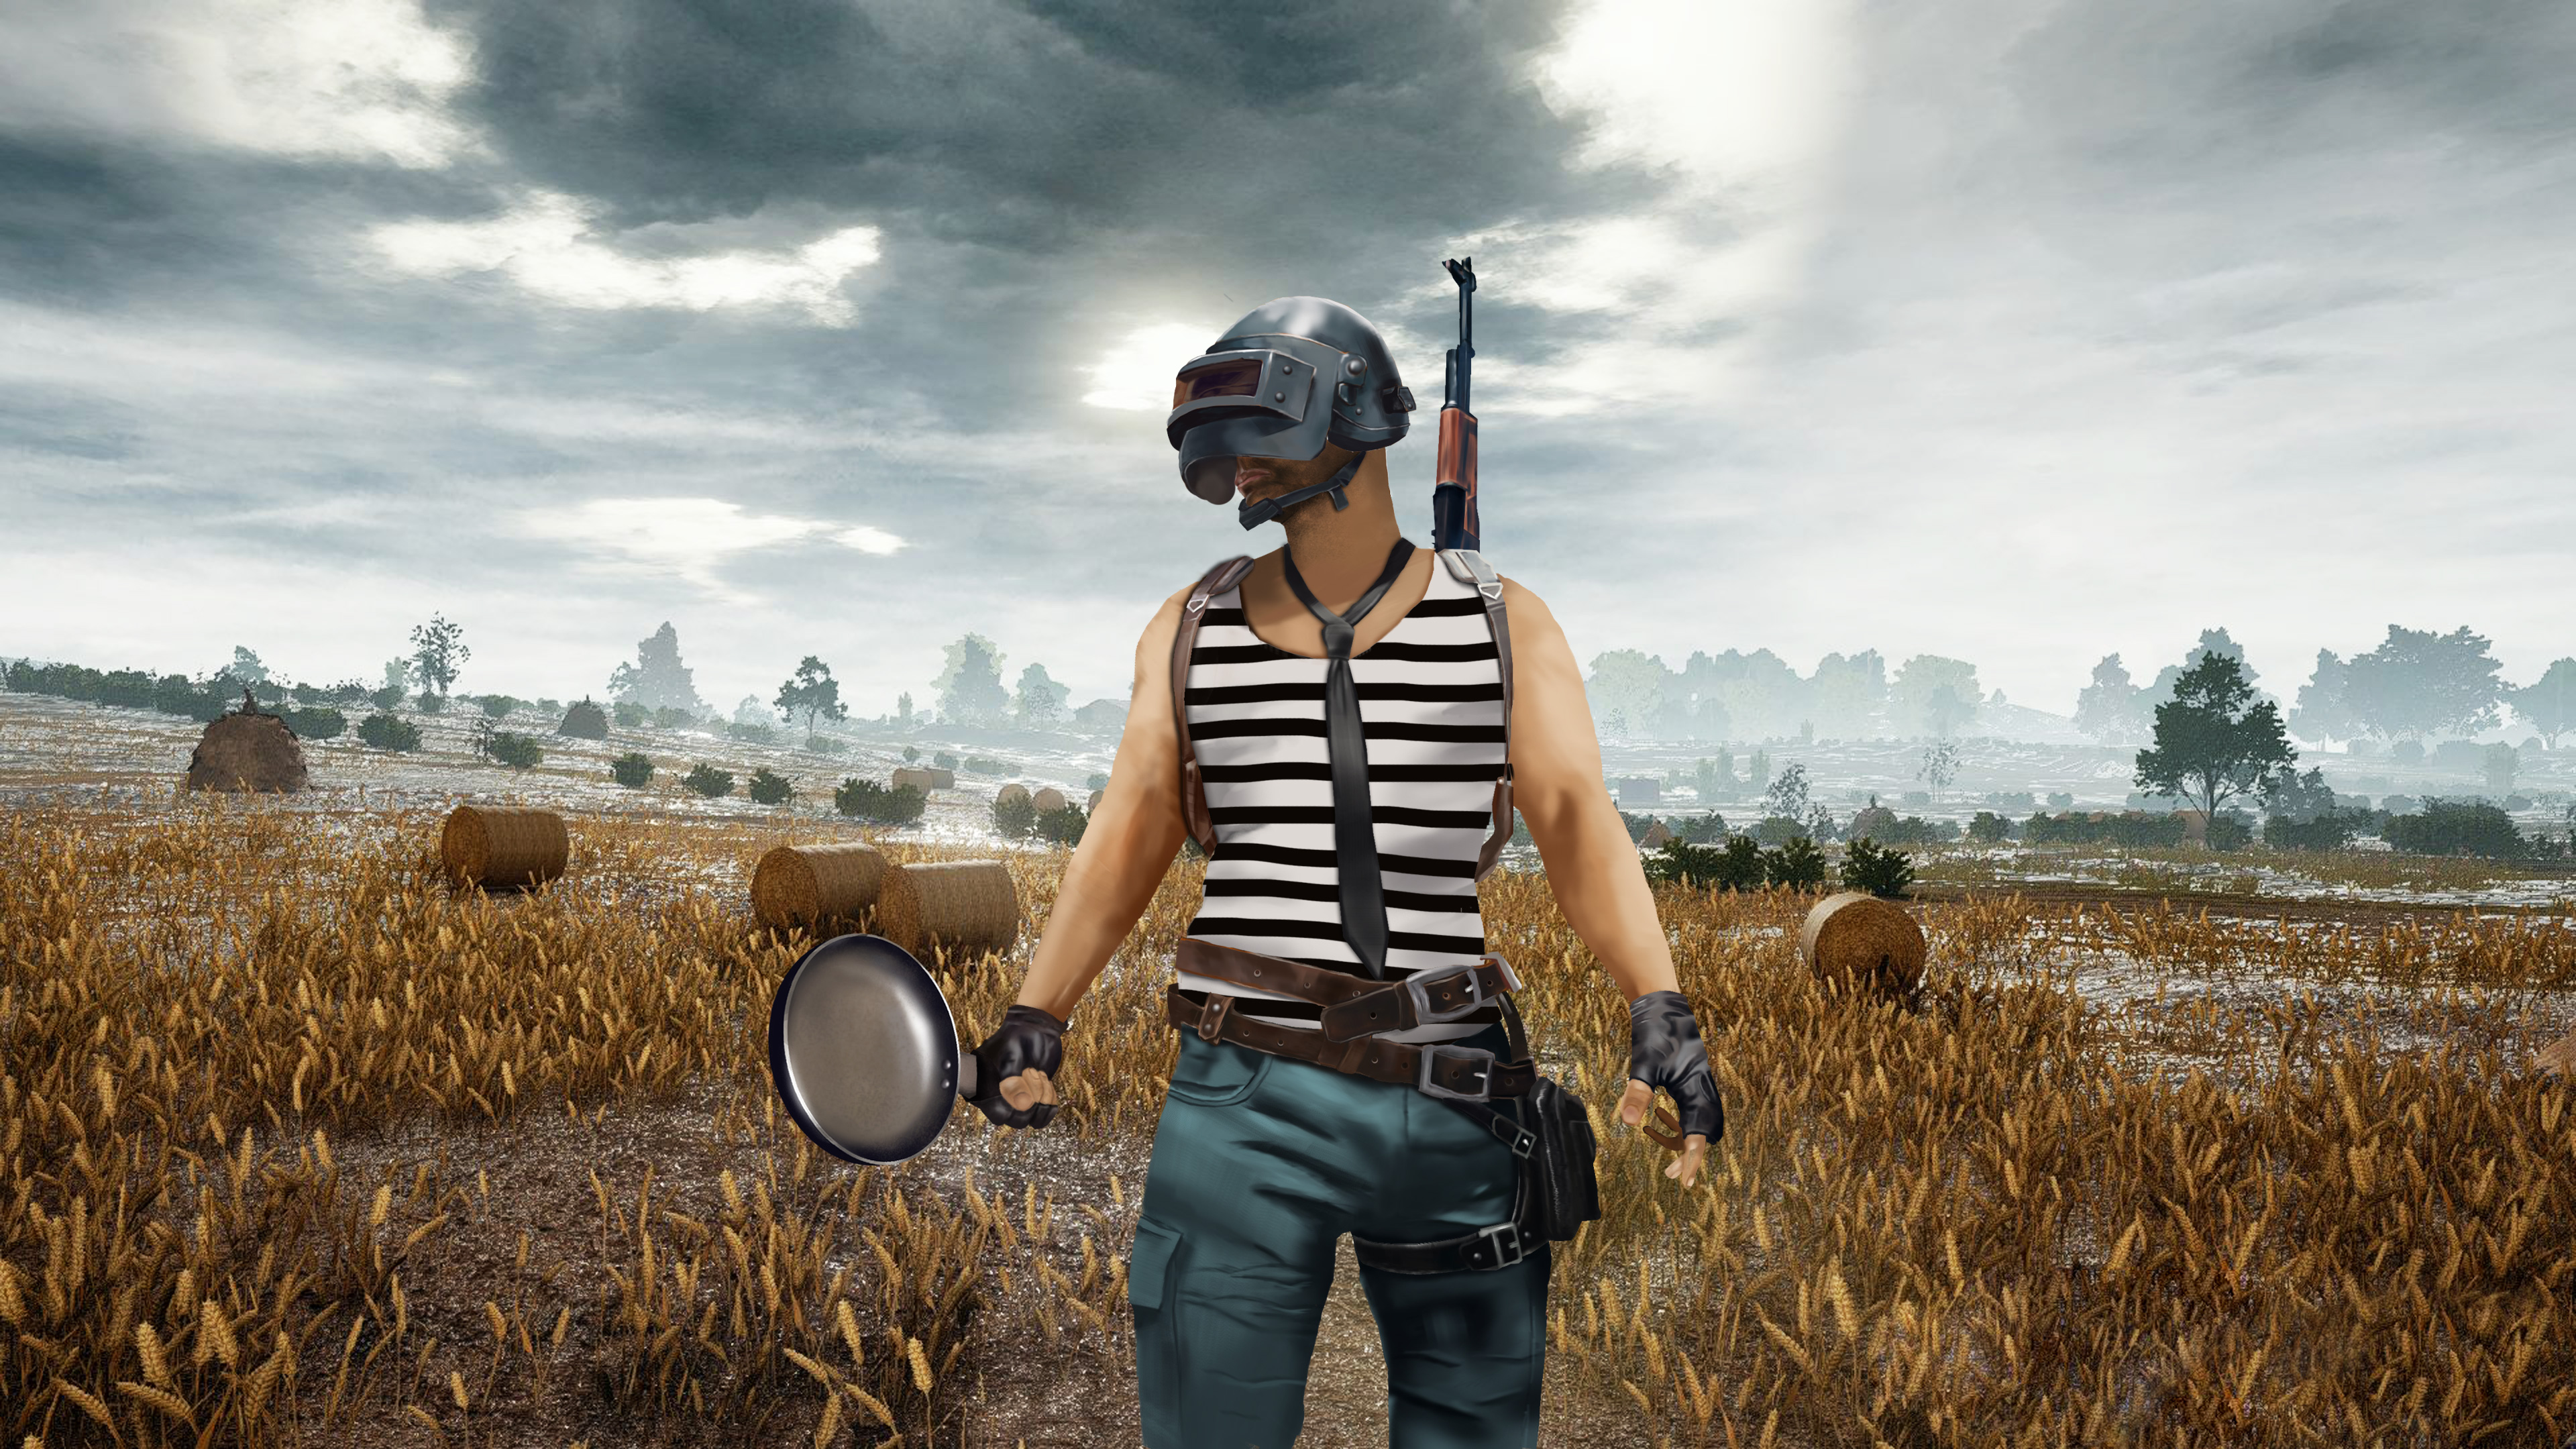 Pubg Lite Wallpaper Hd: PUBG Helmet And Pan Player, HD Games, 4k Wallpapers